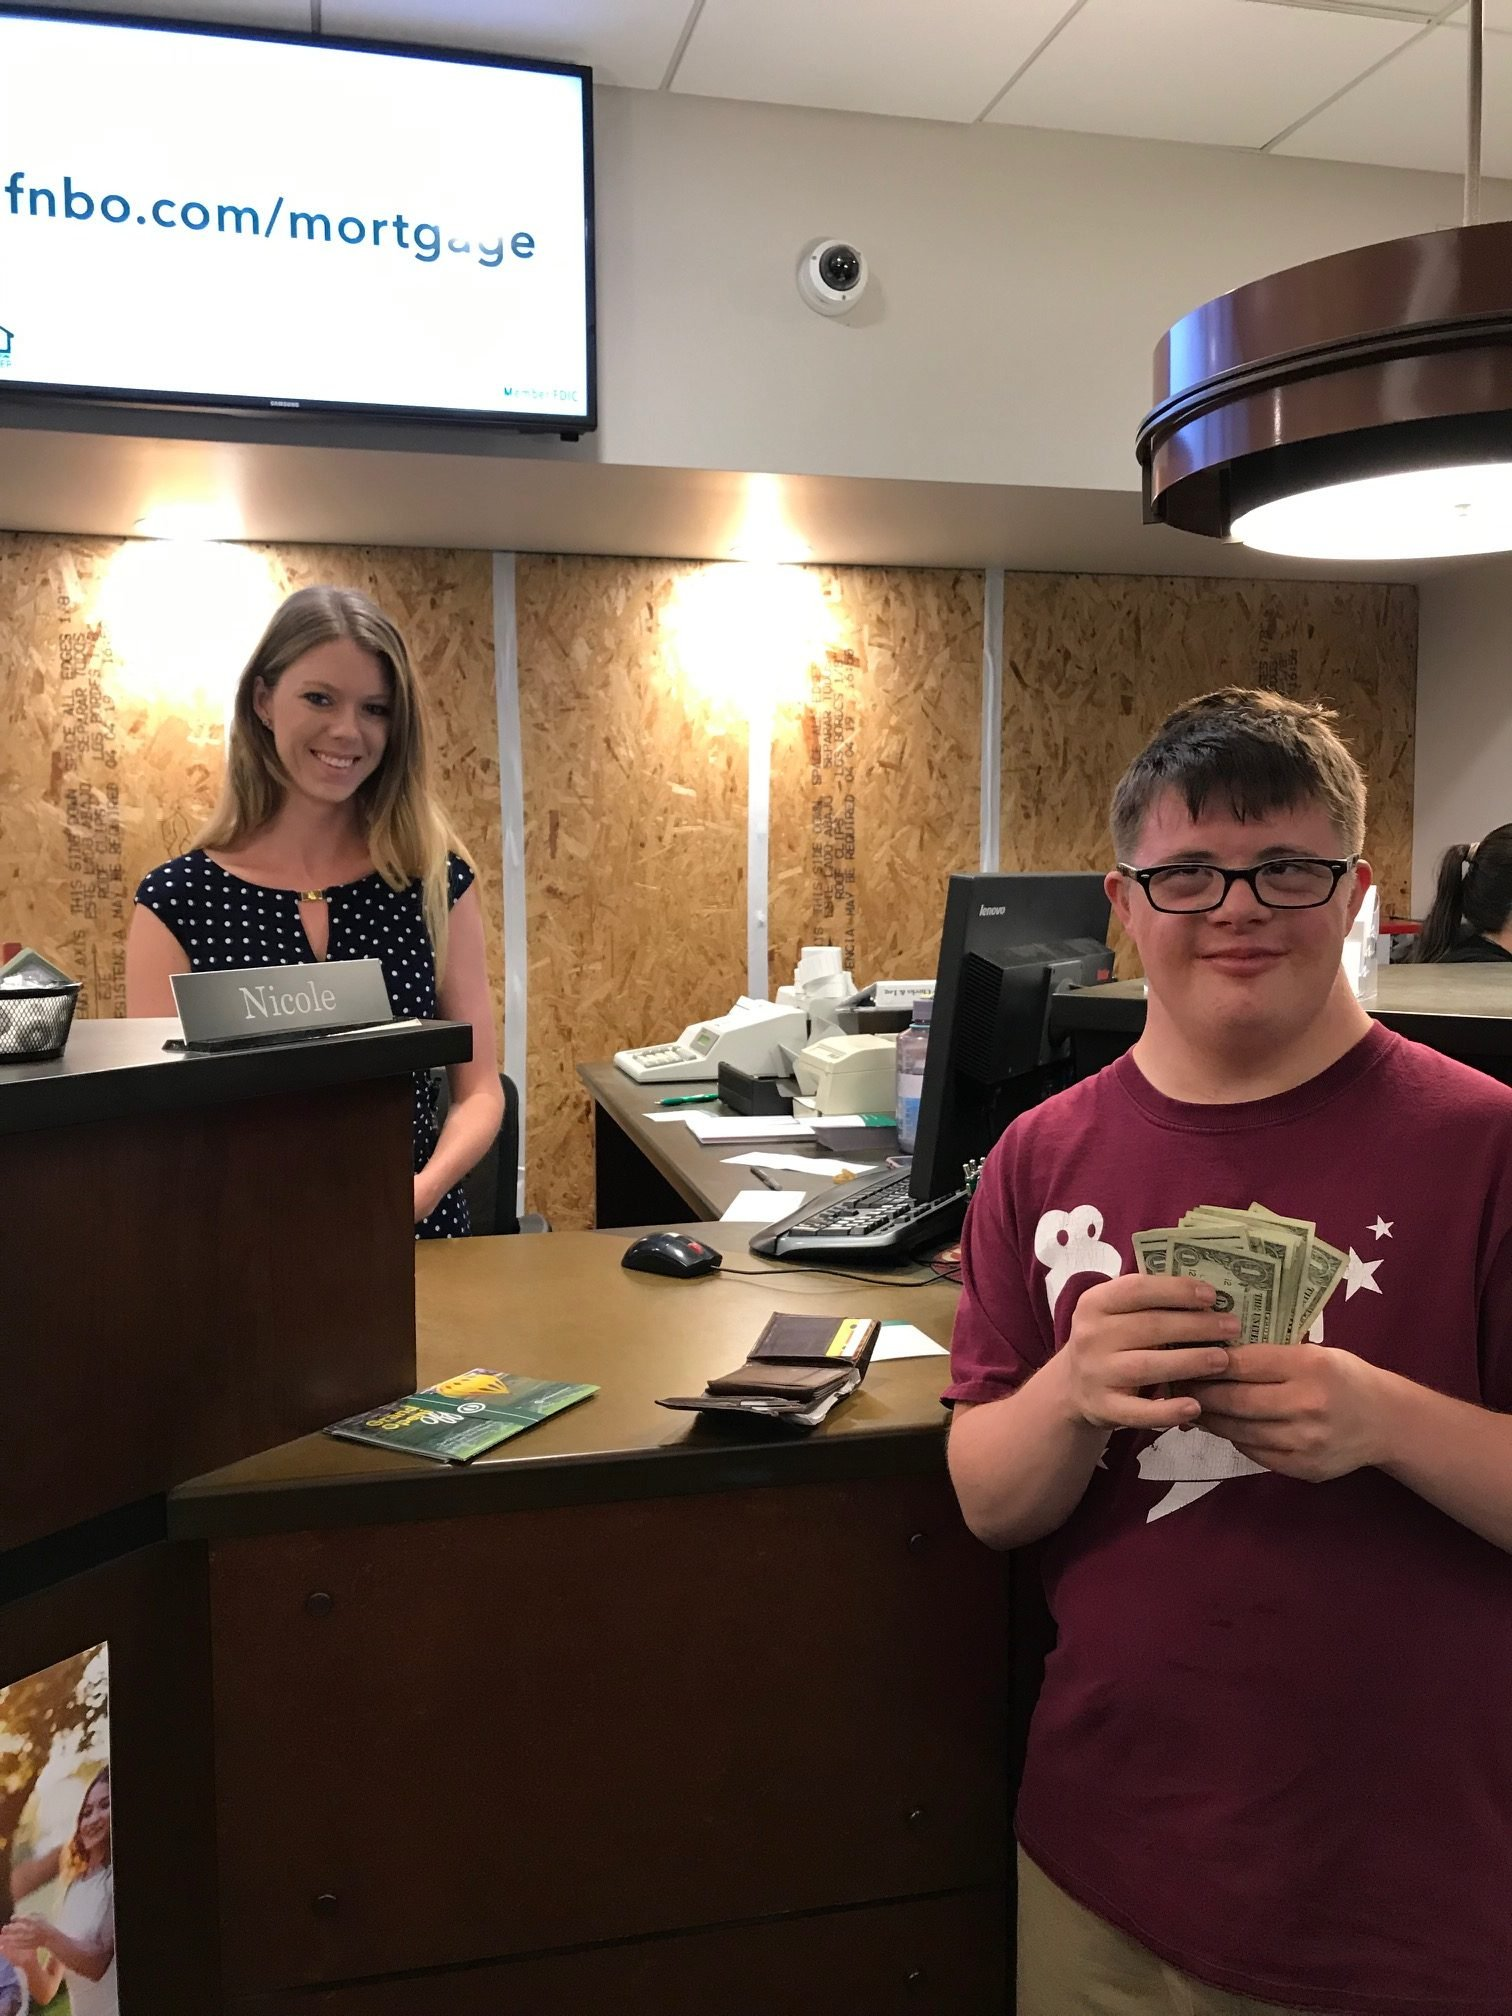 Autistic man Jess Lawhead holding money and smiling in front of a bank teller